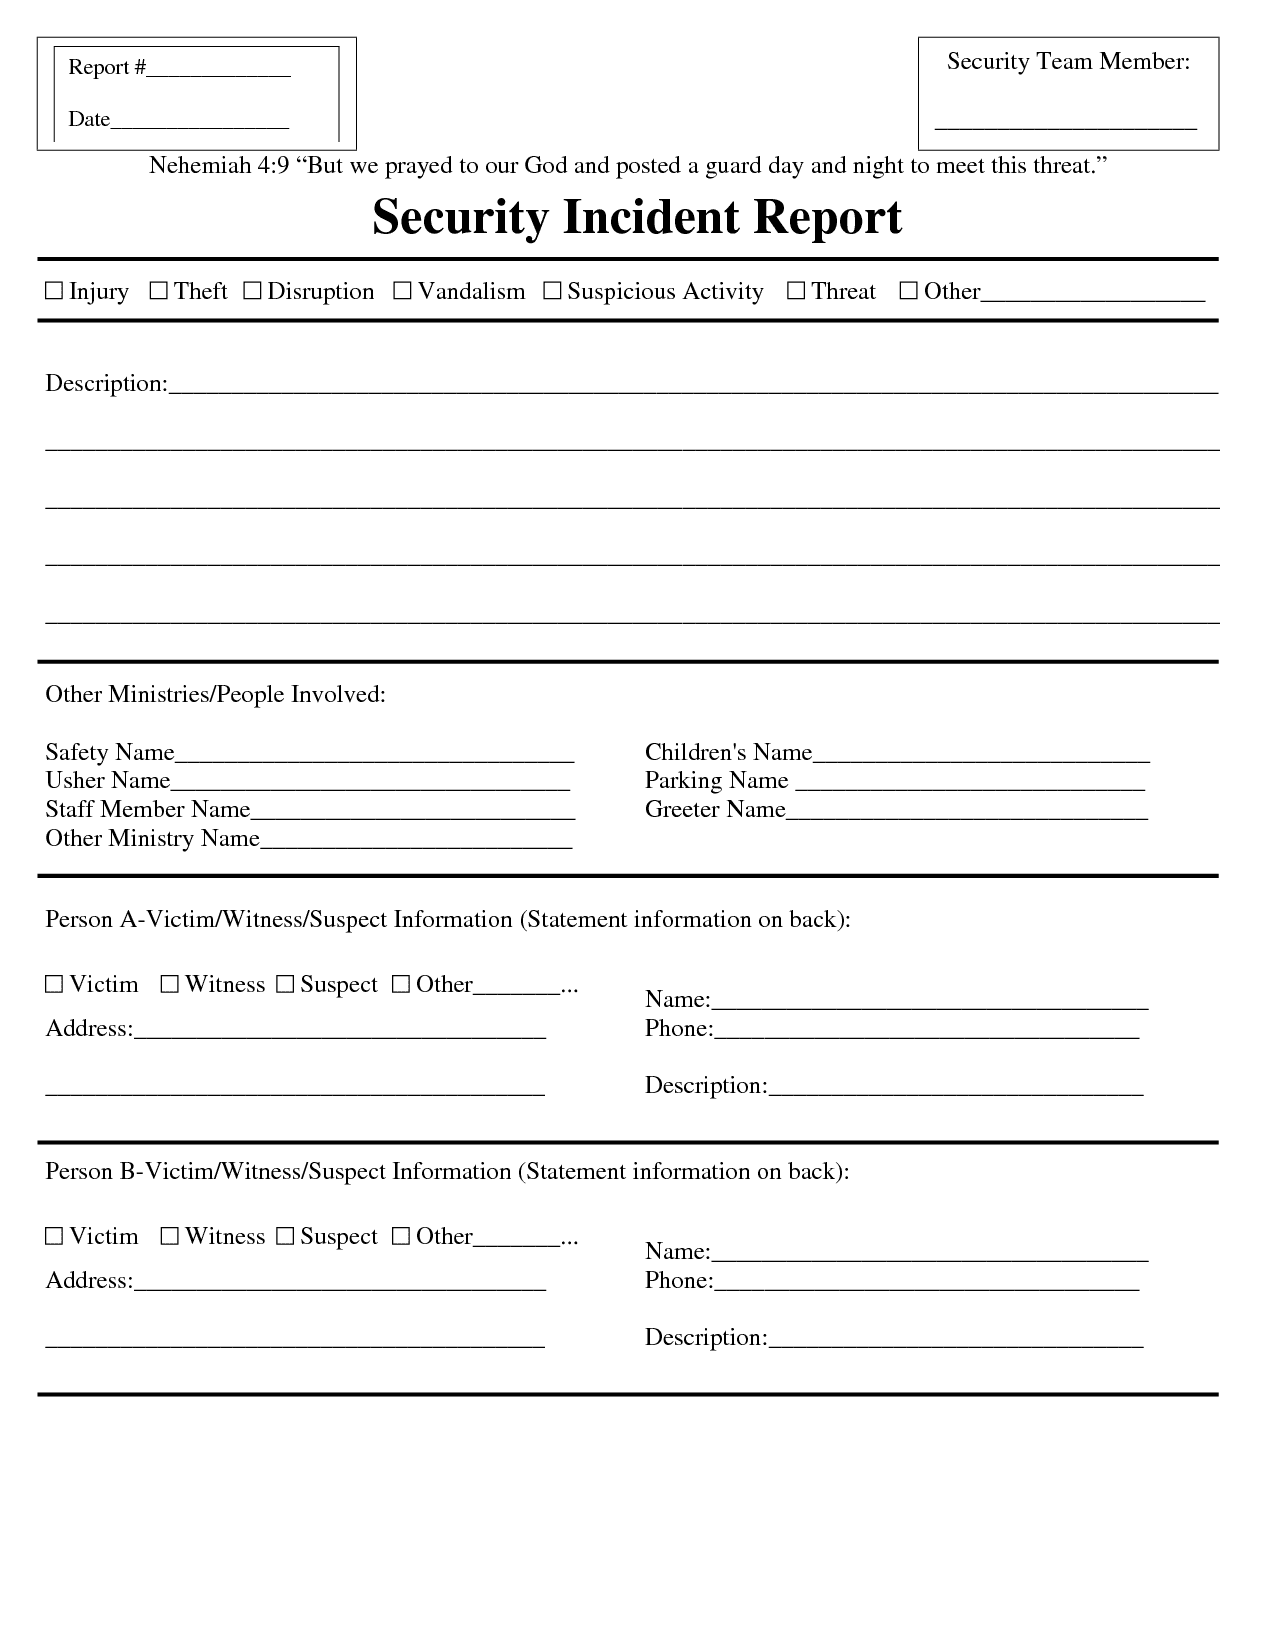 Security Guard Report Writing Training And Security Guard Incident Report Writing Example